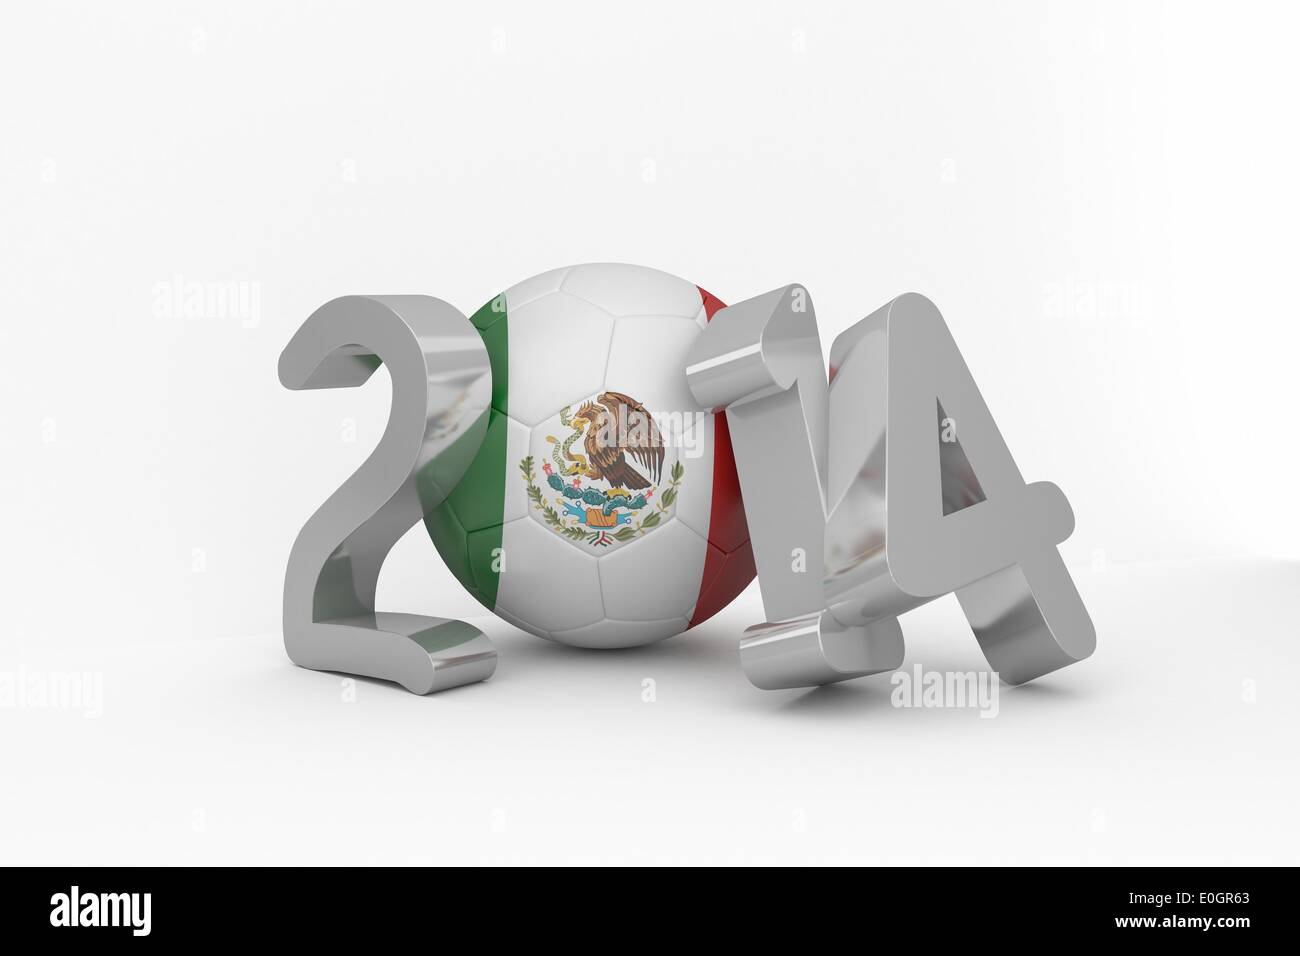 Mexico world cup 2014 - Stock Image